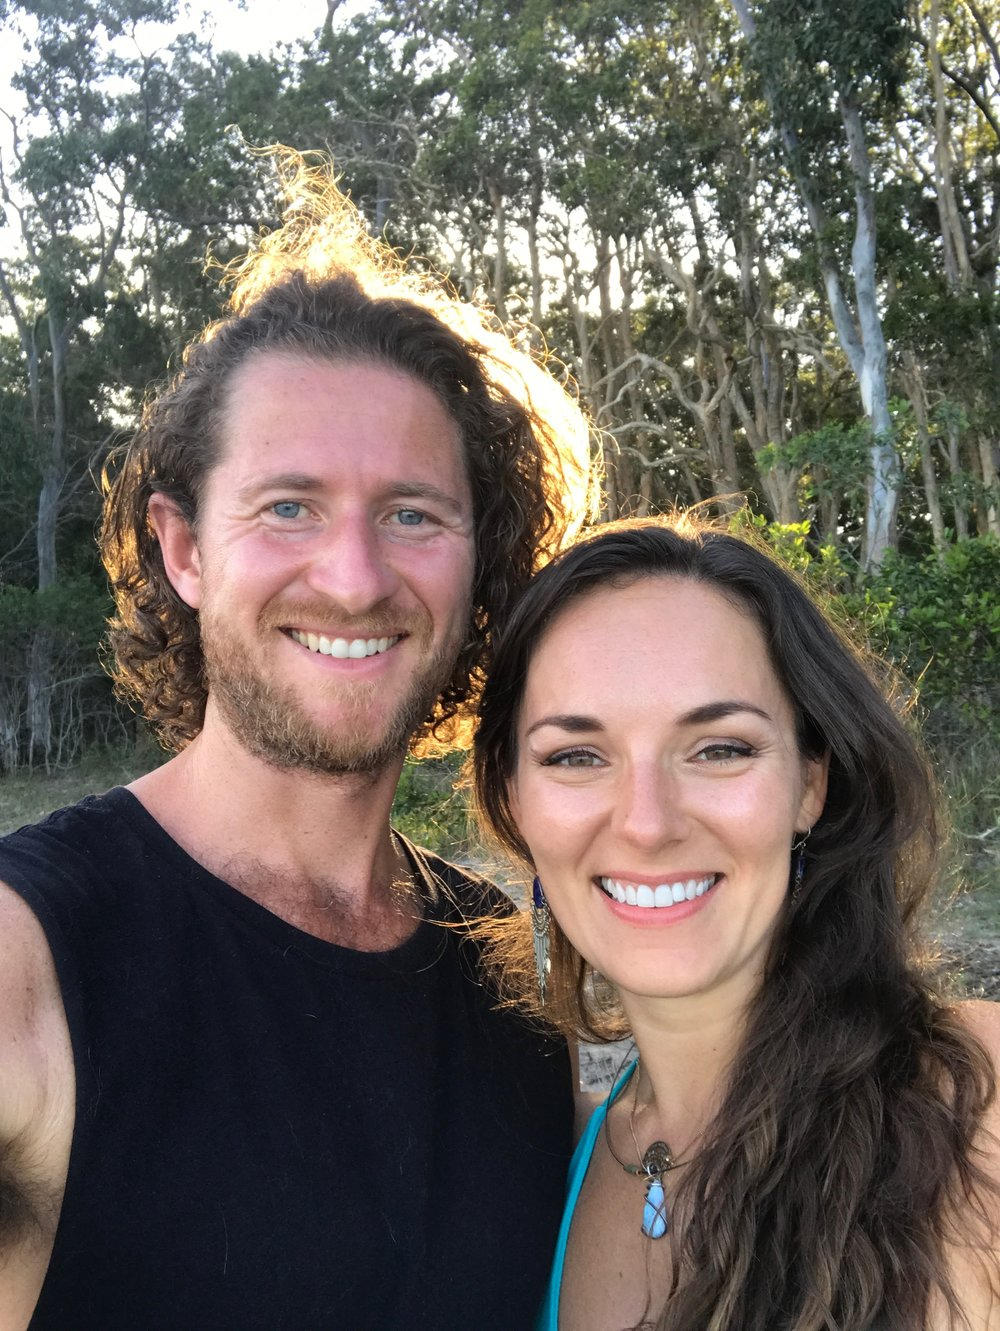 My partner Helena and I offer weekend intensive services for men, women and couples in the areas of sexuality and relationship. -